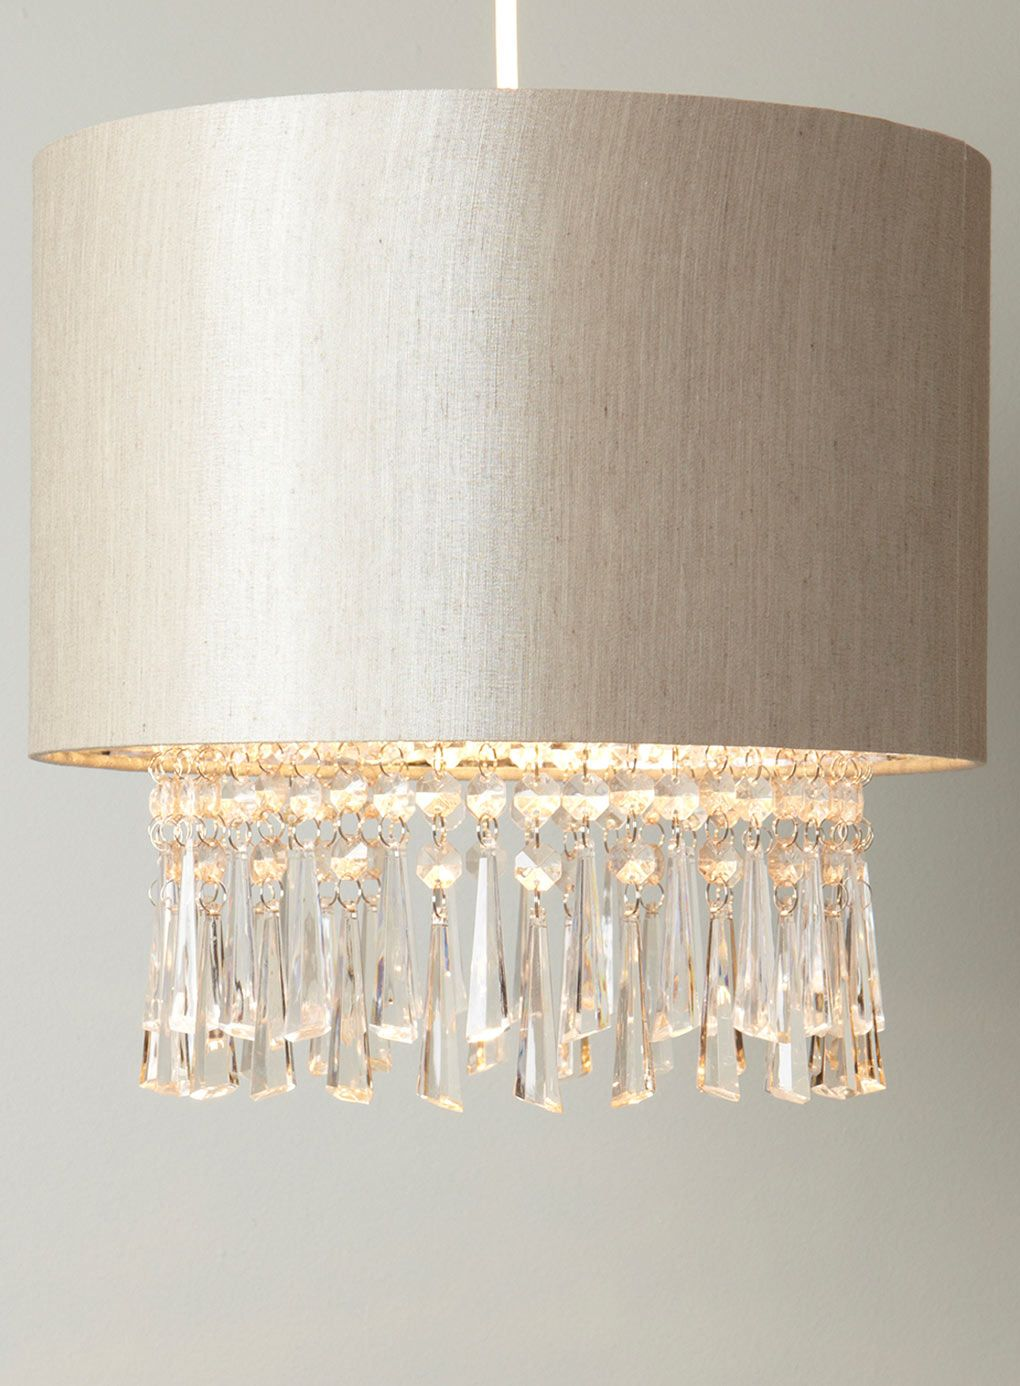 Bhs Ina Wall Lights : Neutral Dropper Ceiling Shade - ceiling lights - Home & Lighting - BHS Light fittings ...